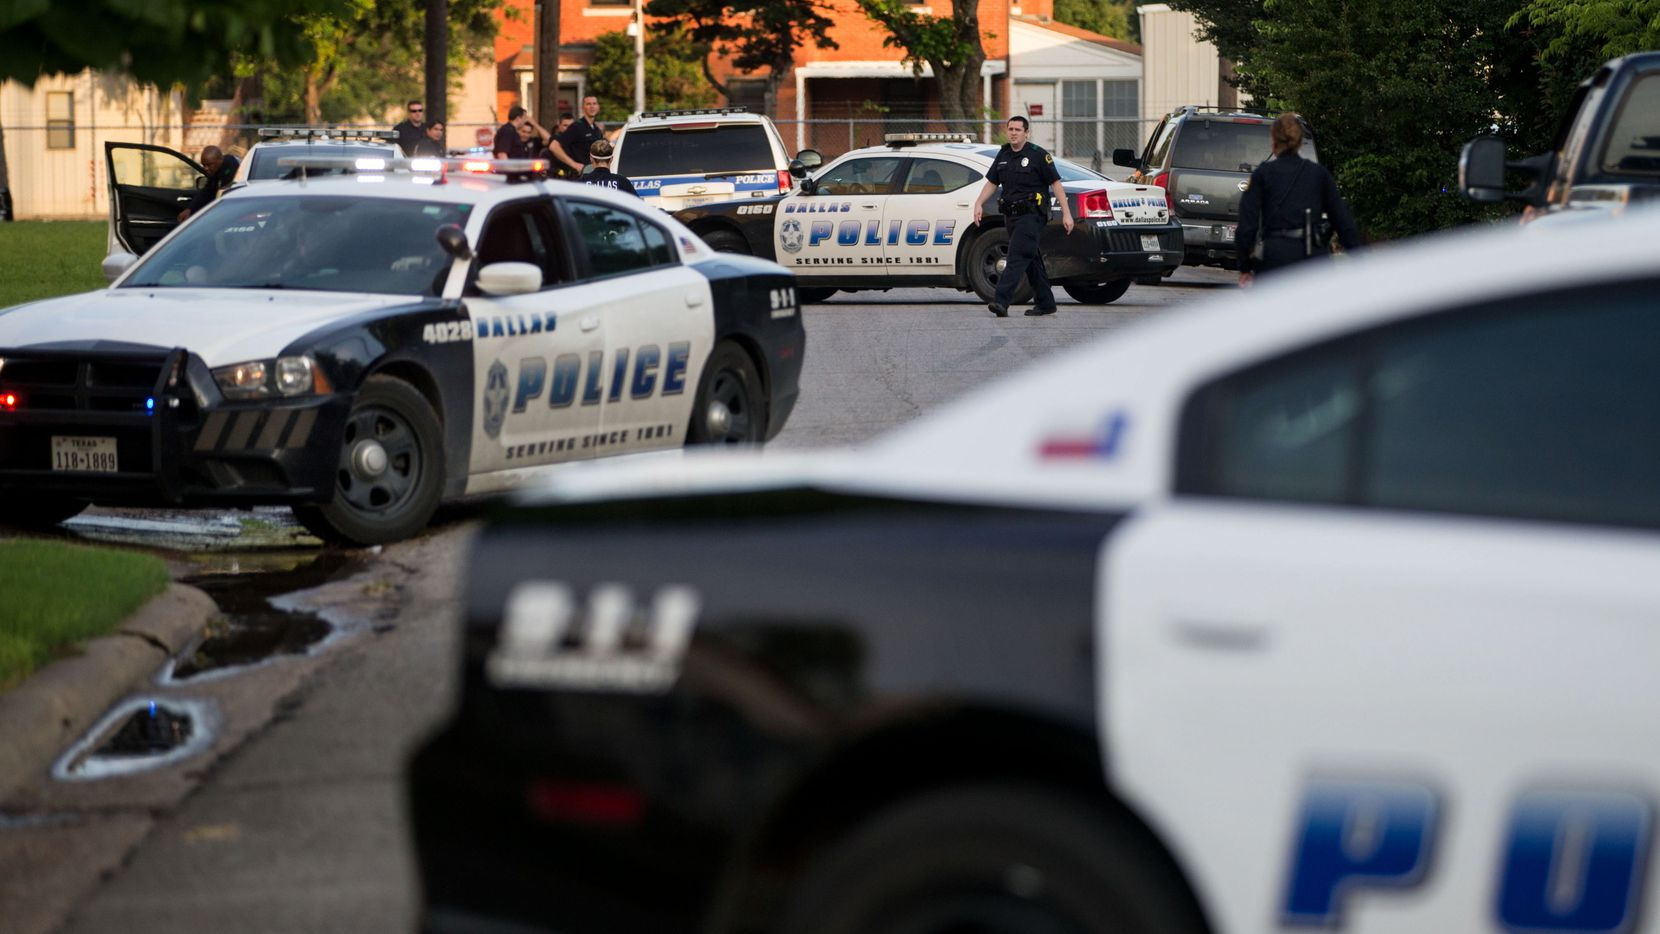 Police officers respond to a shooting near the VA Medical Center in Dallas.